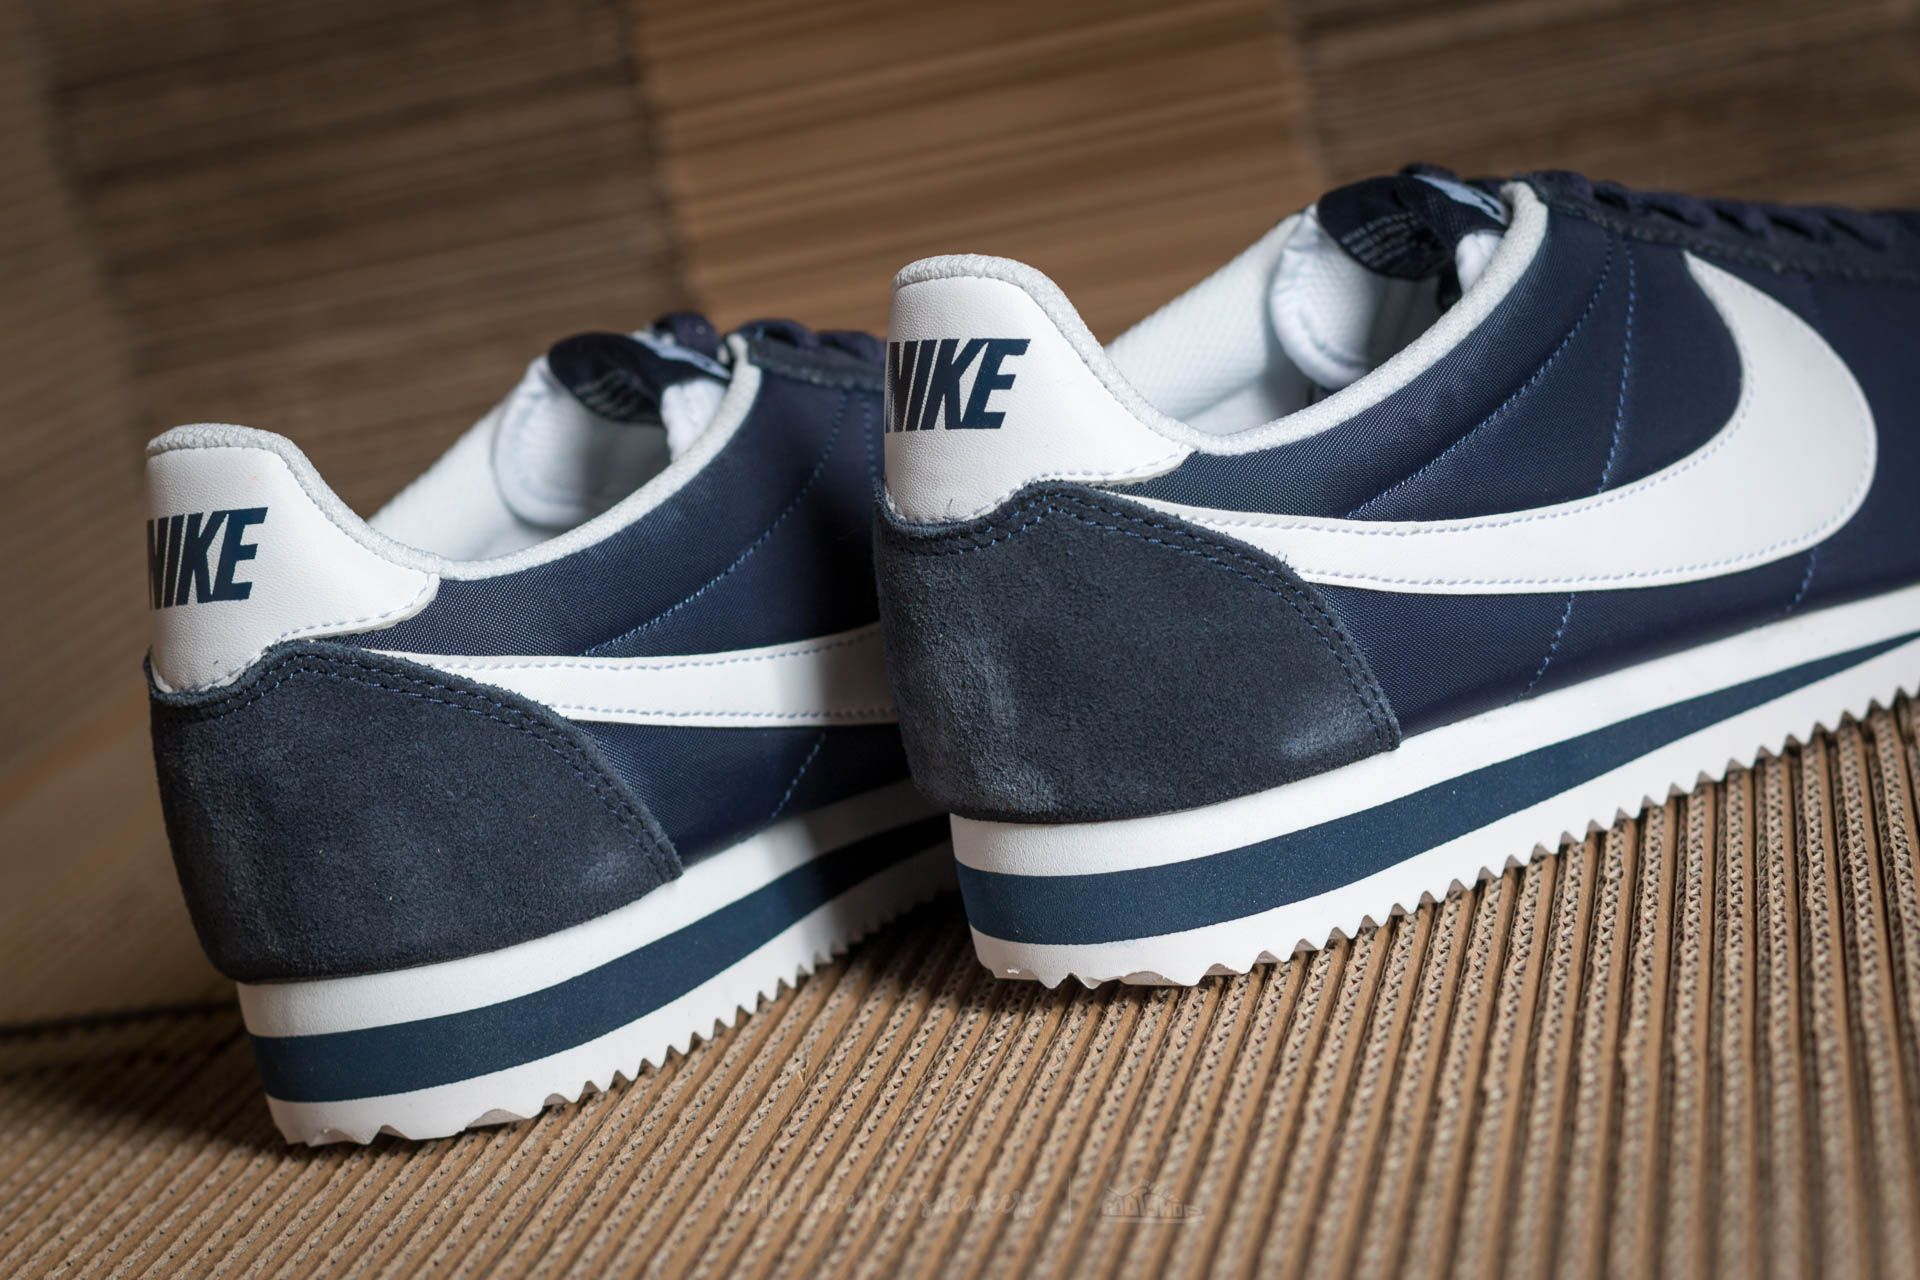 new style 5d5ae 3a431 wholesale nike classic cortez nylon sneakers blue 4135b 0d570  czech nike  classic cortez nylon obsidian white at a great price 59 buy at footshop  1321b